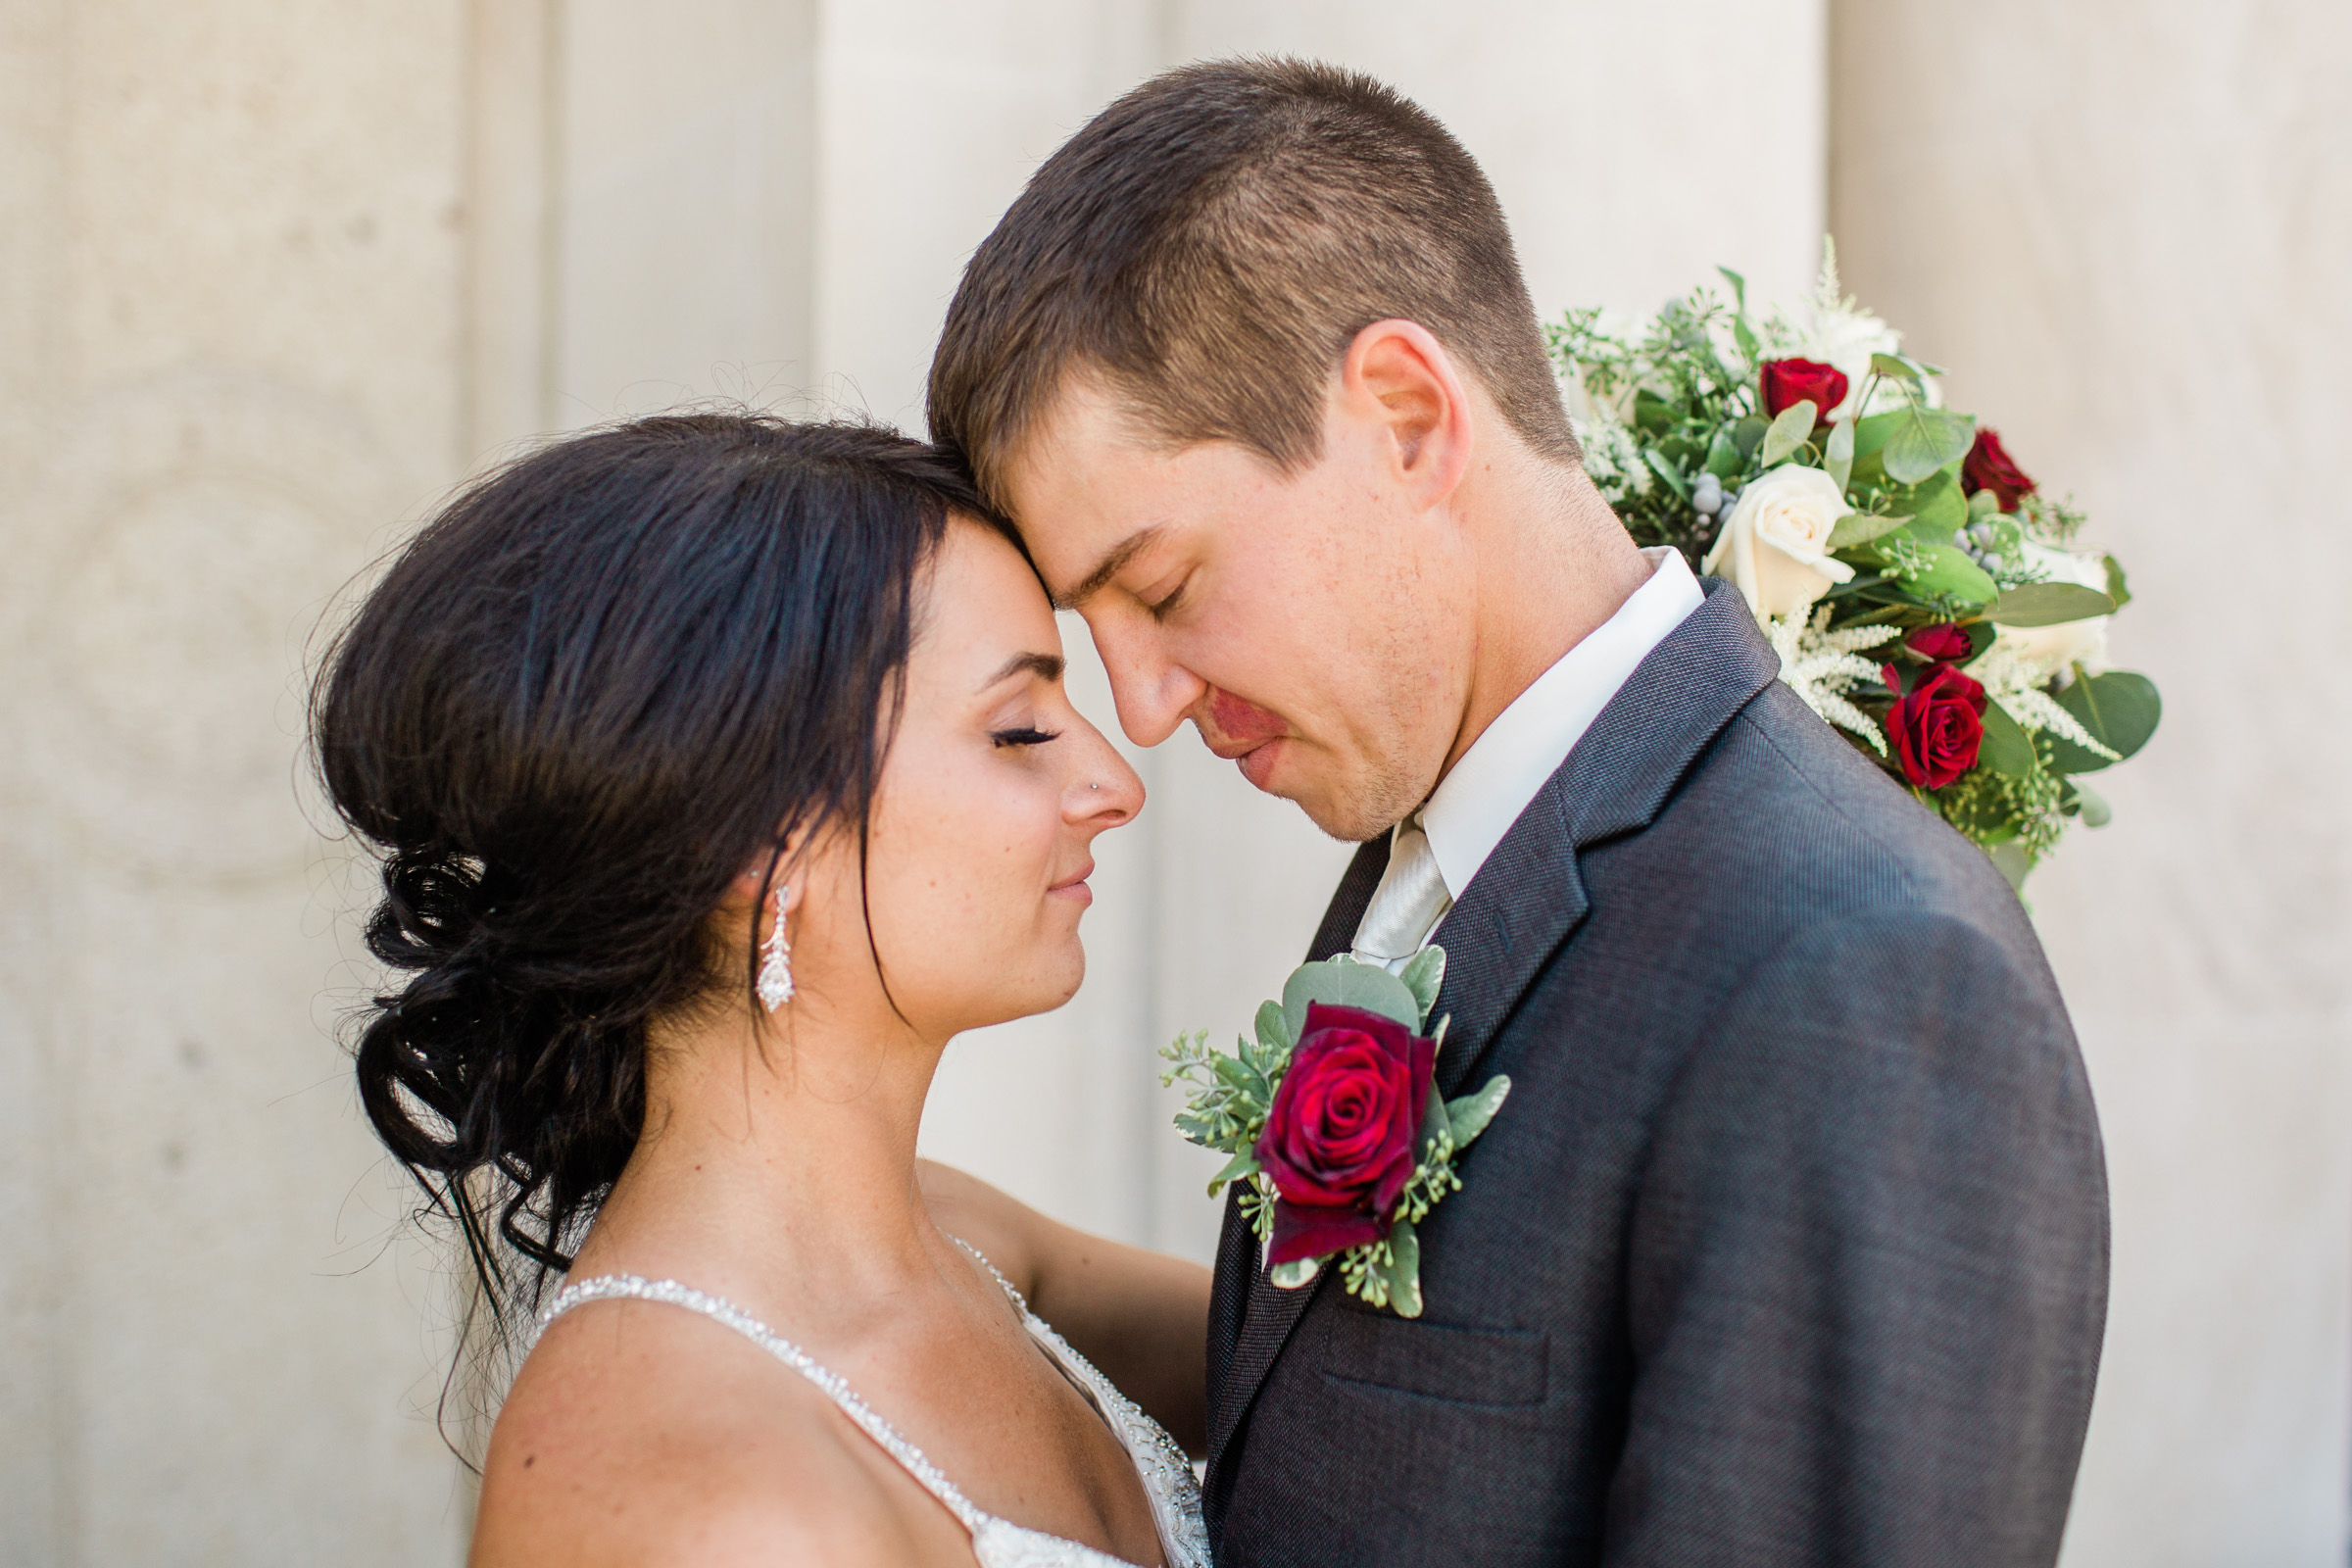 bride and groom closing eyes together on wedding day des moines